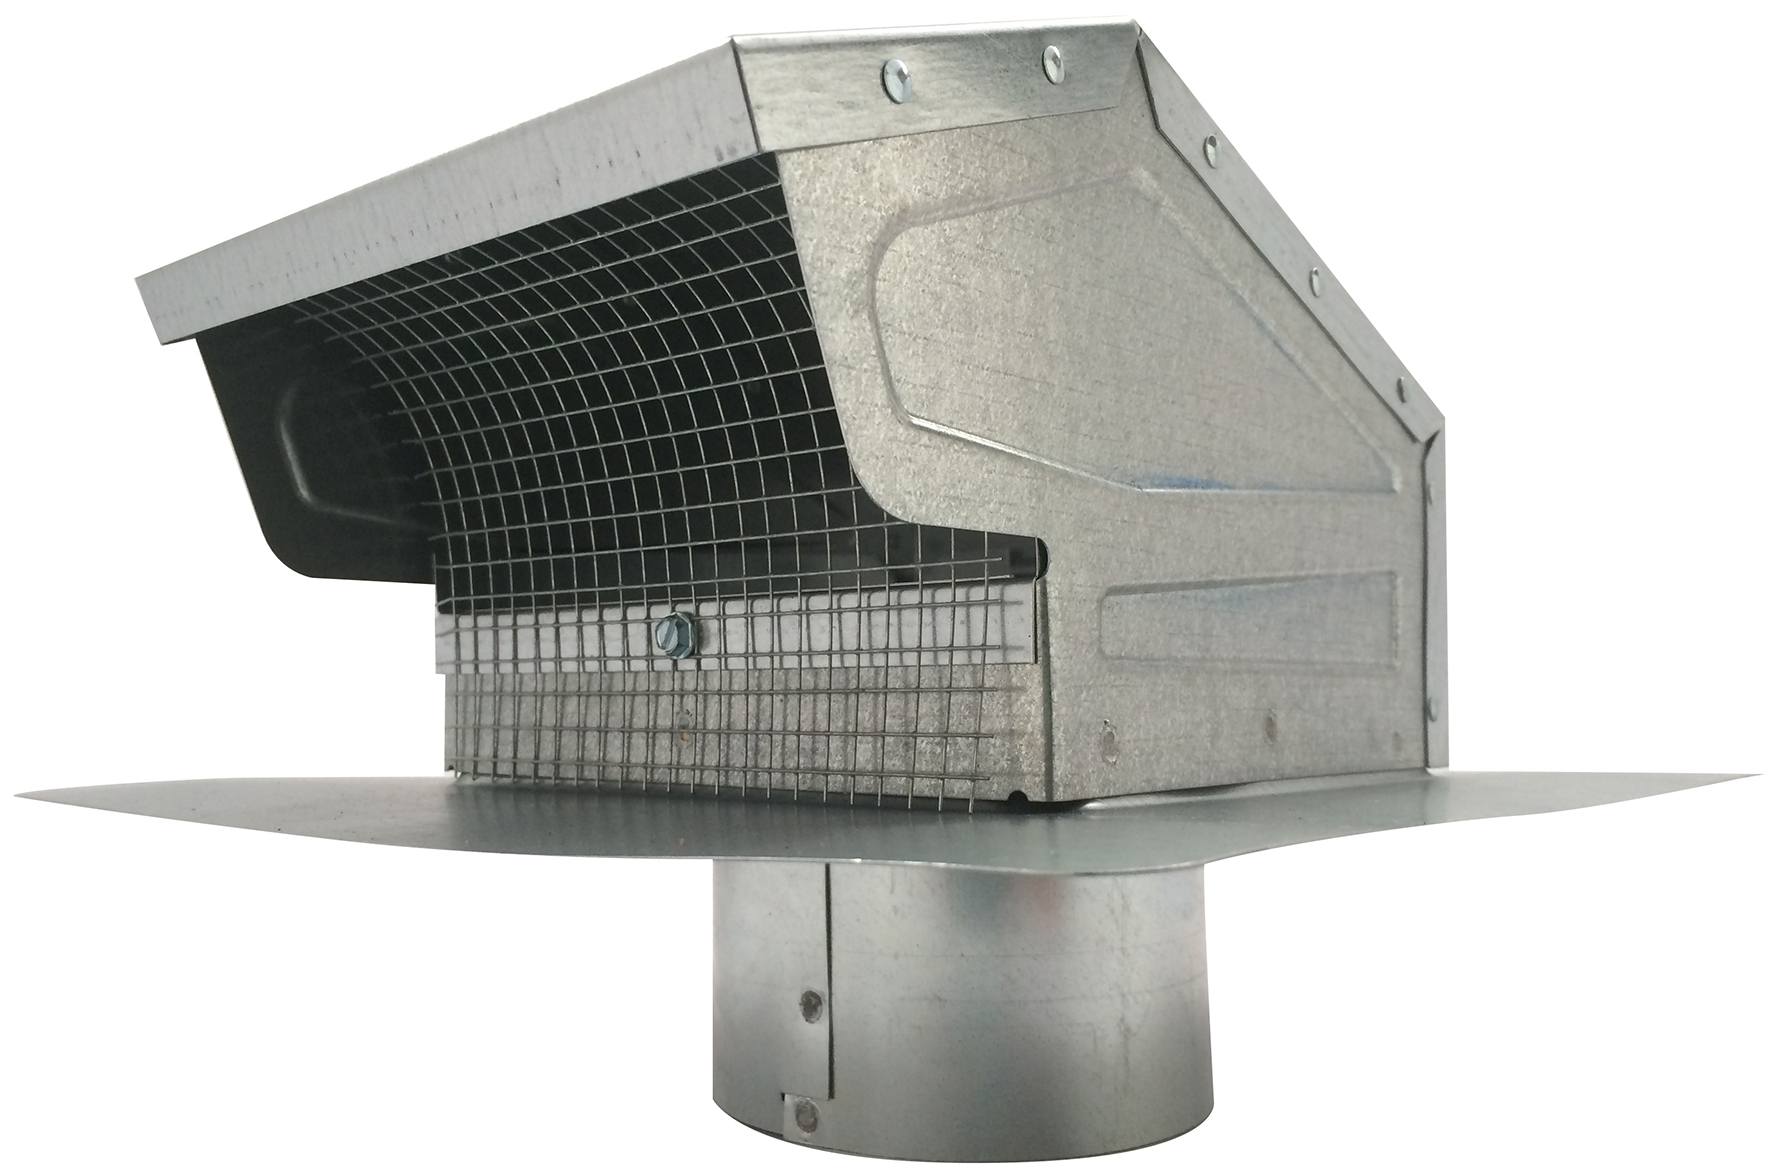 011756 Galv Roof Cap with Collar.jpg